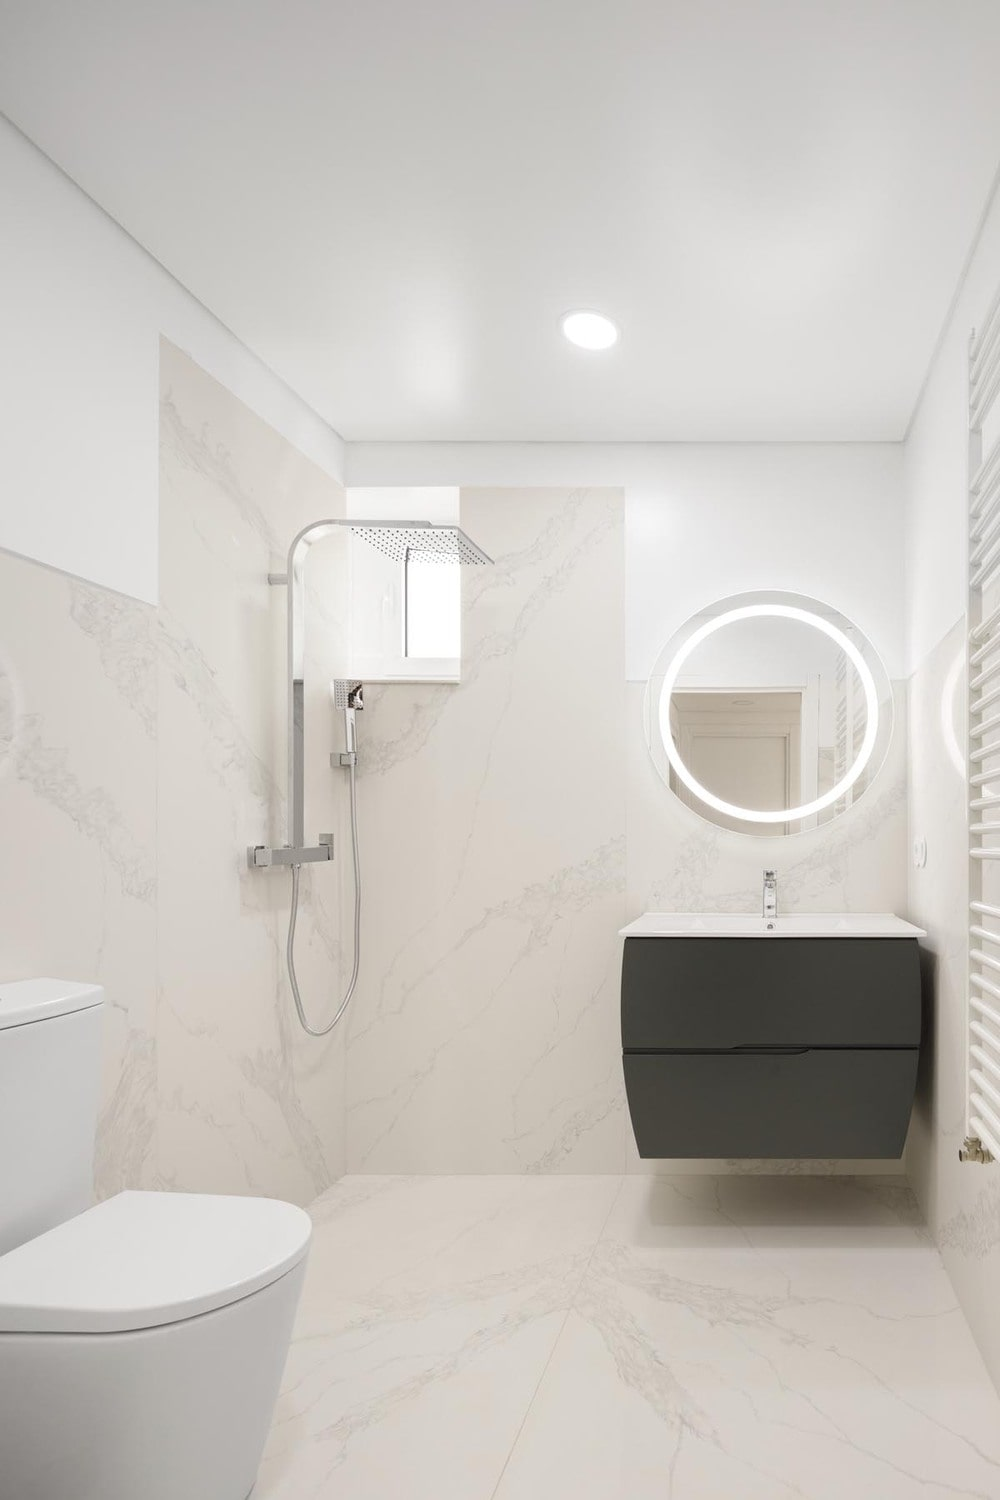 This is a simpler bathroom that has a small floating black vanity that stands out against the surrounding bright beige tones.